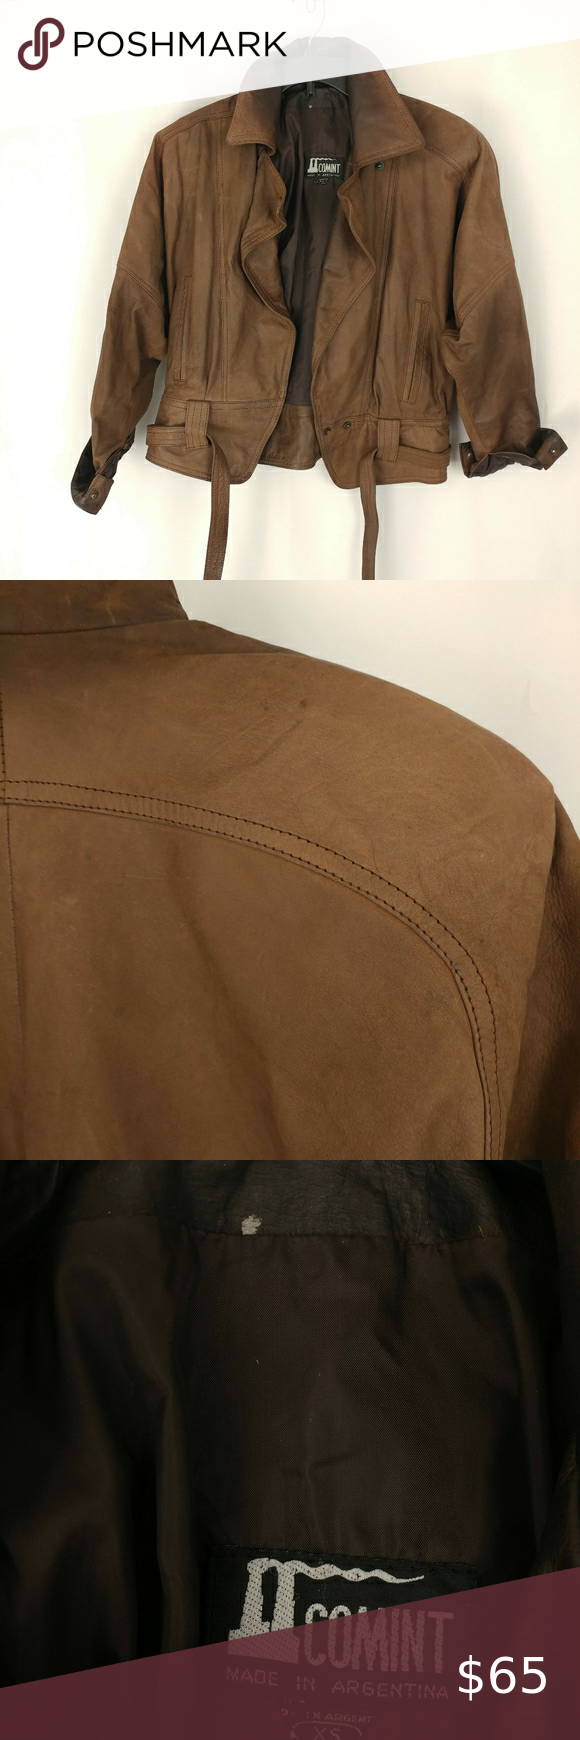 Vintage Comint Leather Jacket Made In Argentina Leather Jacket Brown Leather Jacket Cropped Style [ 1740 x 580 Pixel ]